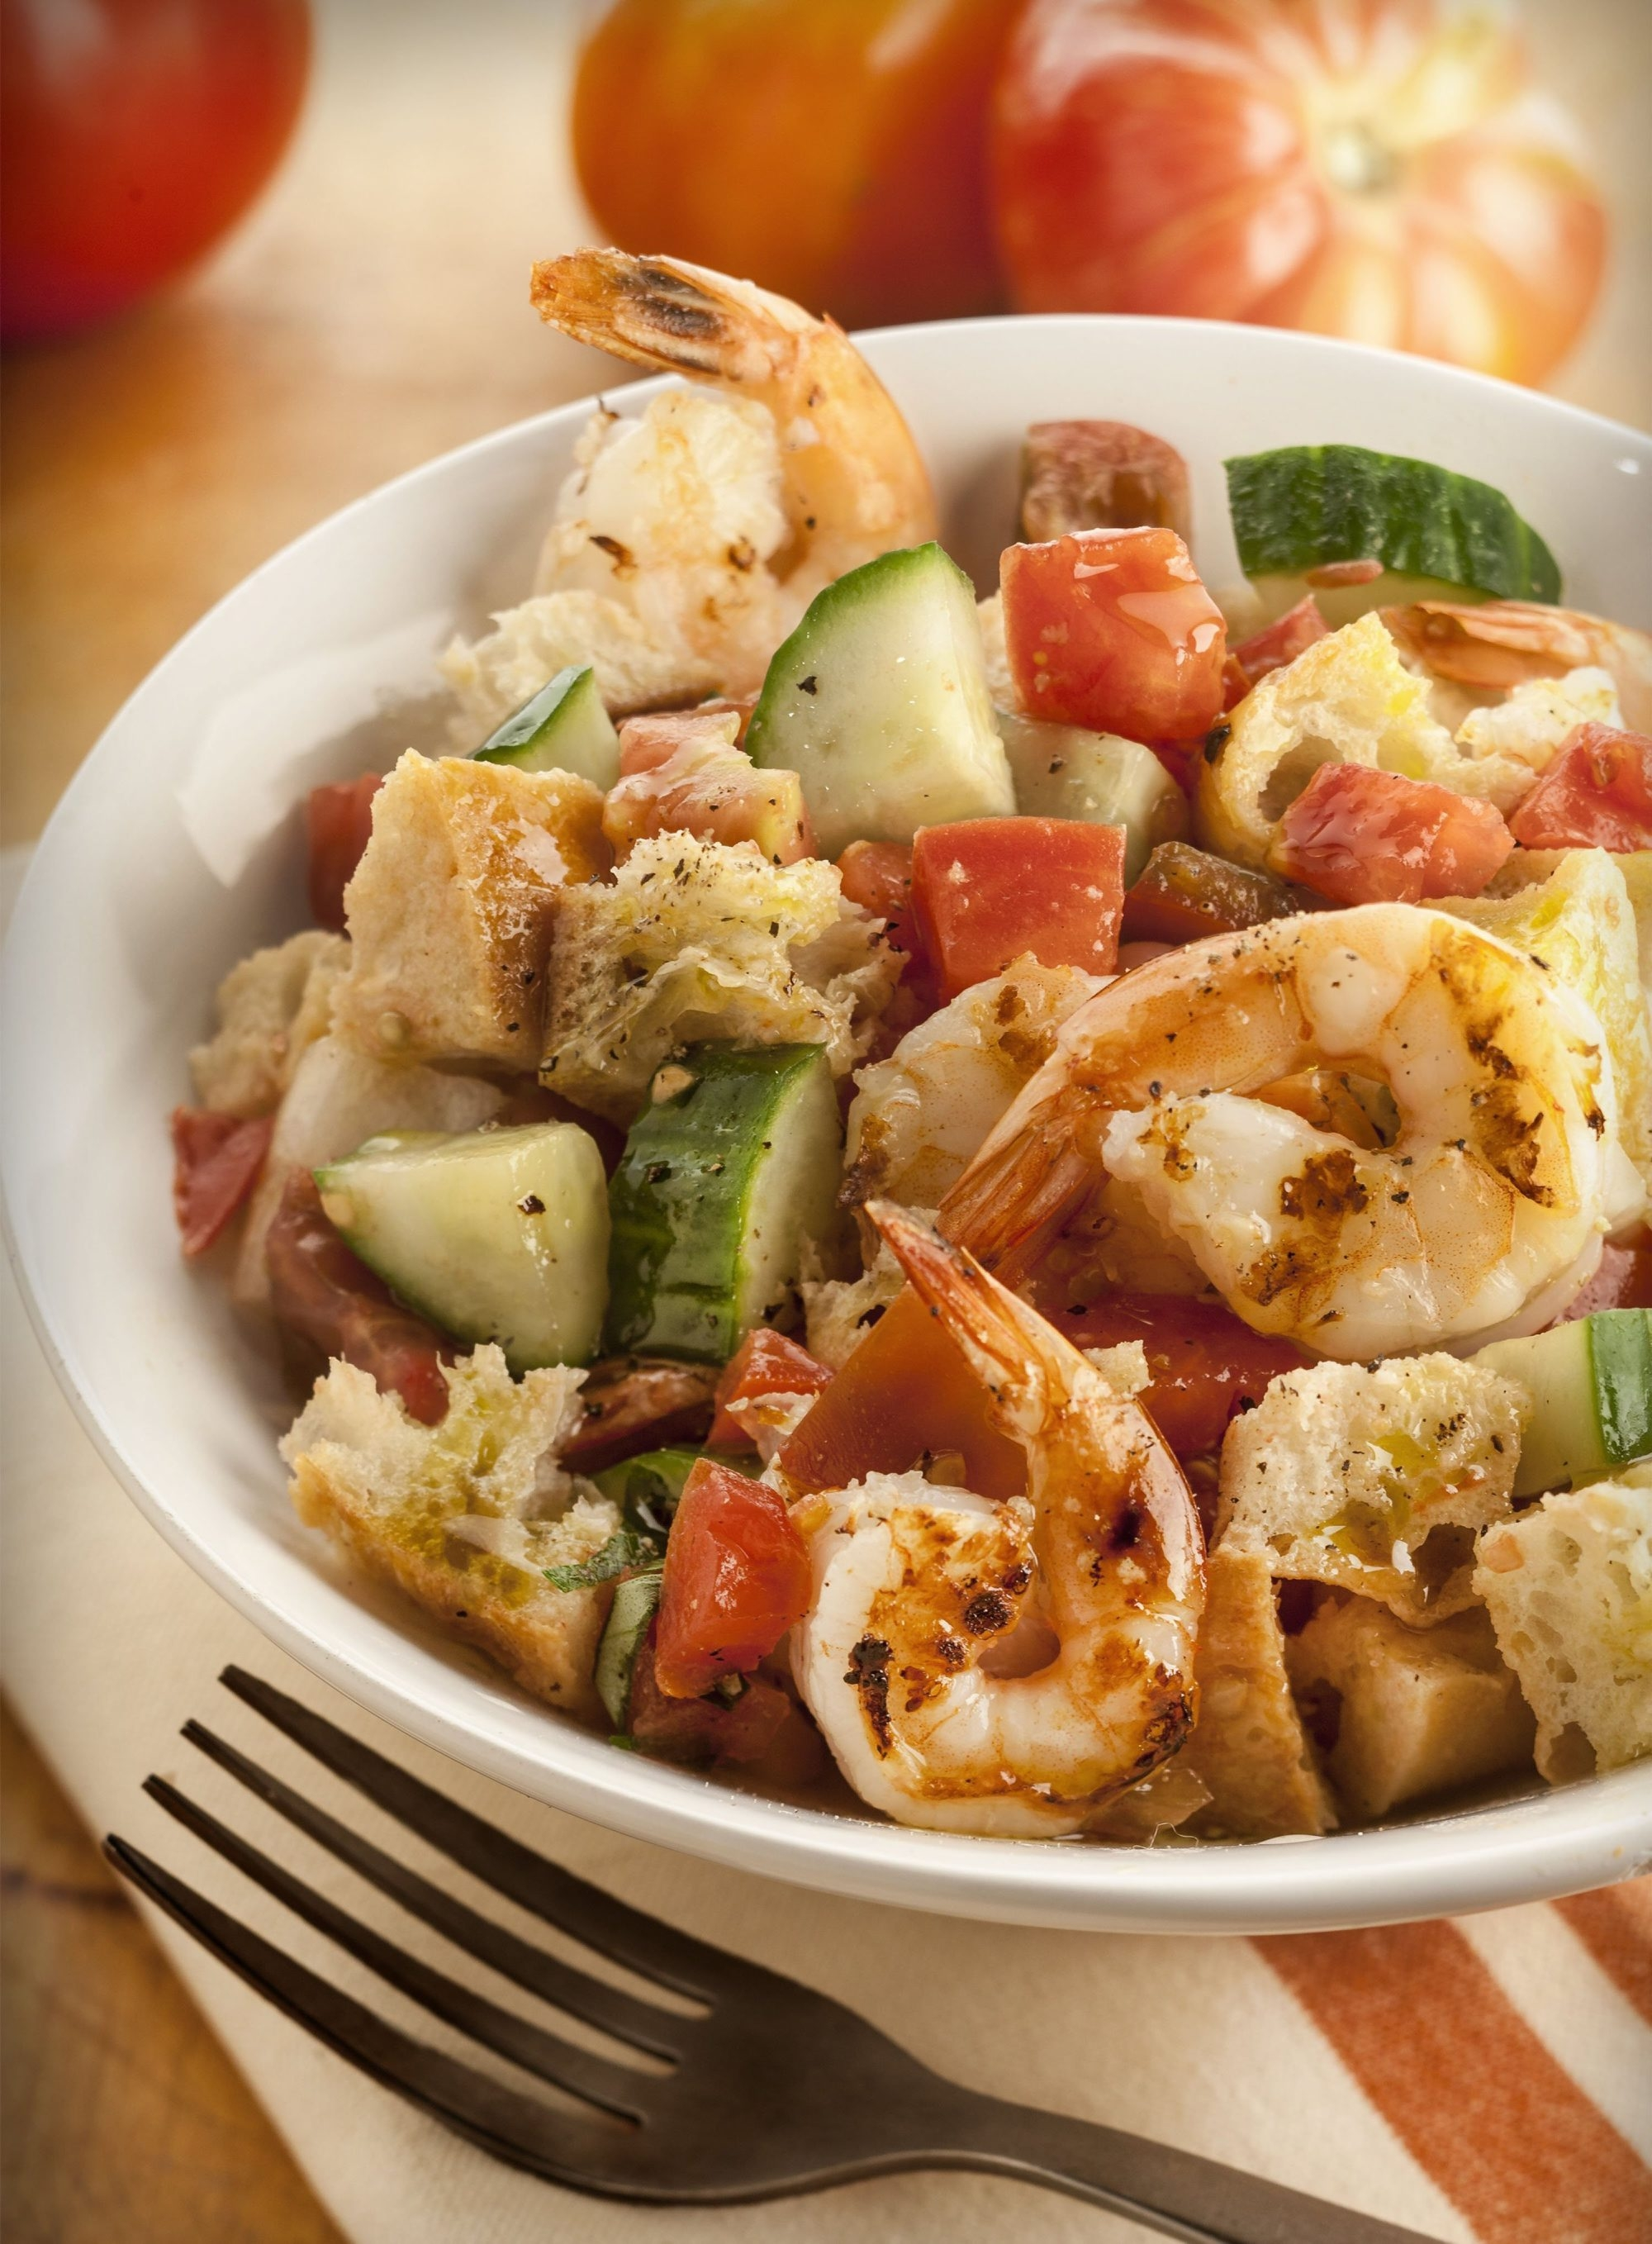 Panzanella is an Italian bread and tomato salad studded with crisp onion and cooling cucumber.